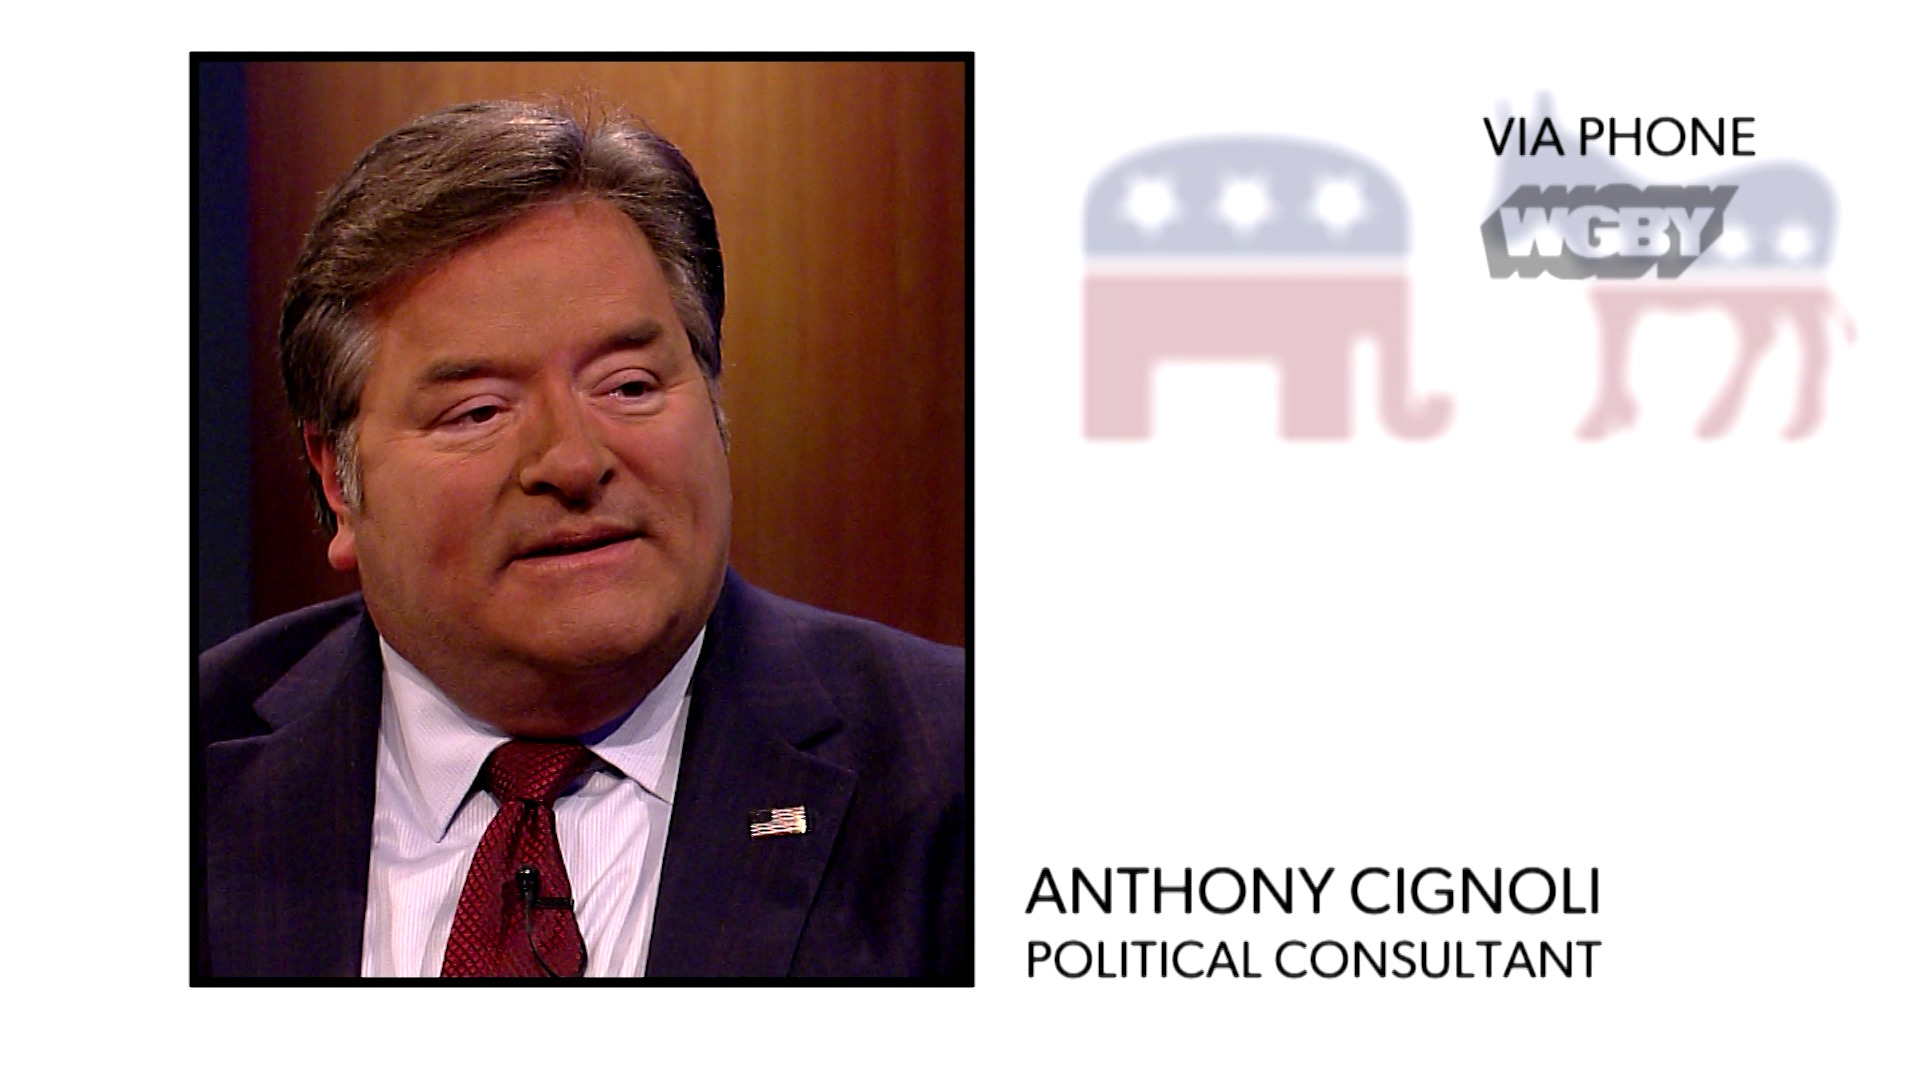 WATCH: Political consult Anthony Cignoli discusses virtual campaigning during a pandemic and the state of the 2020 race for president.